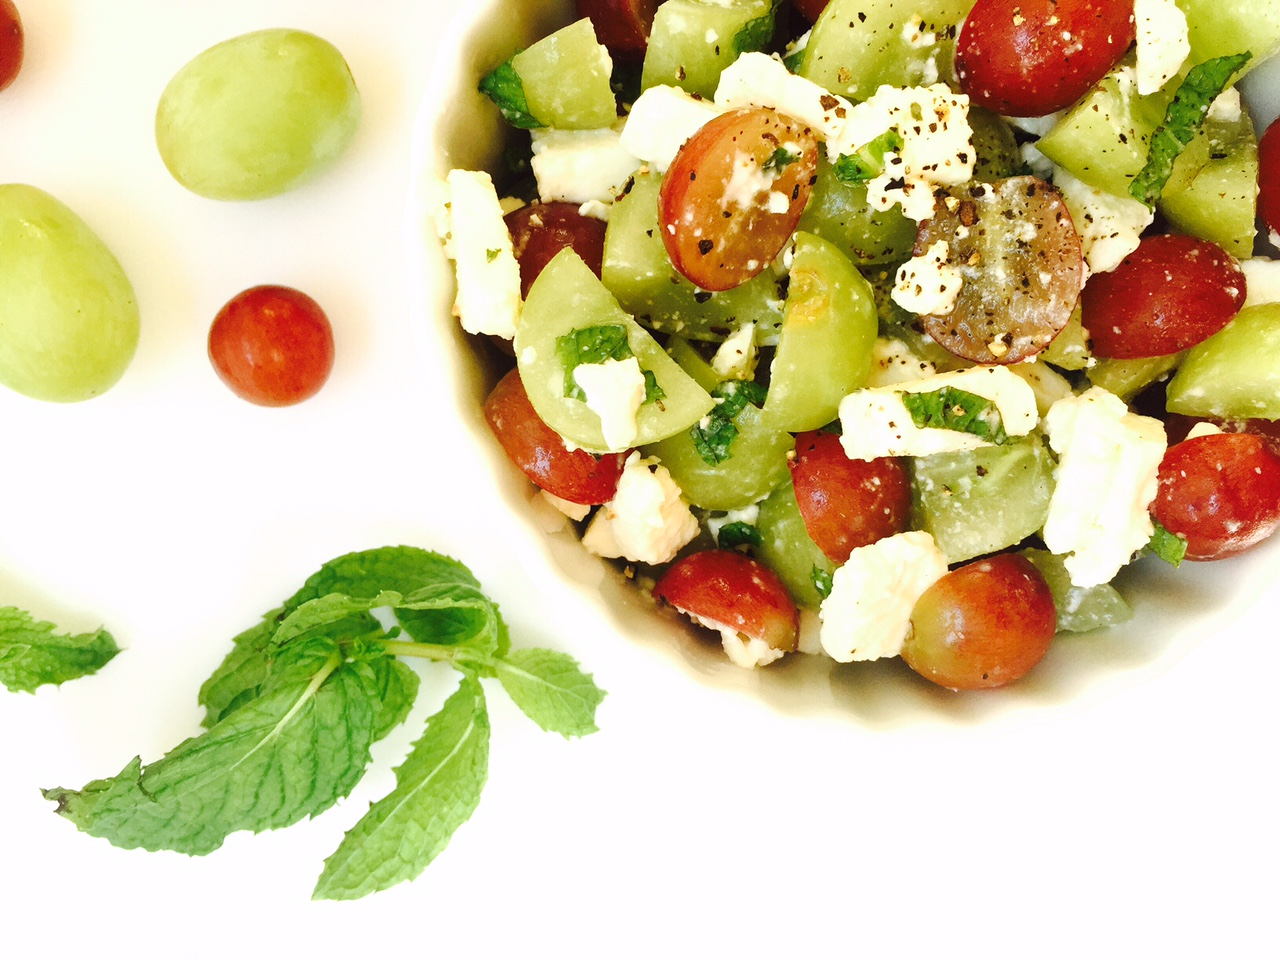 ... feta, crumbled or diced 6-8 mint leaves, chopped or julienned squeeze